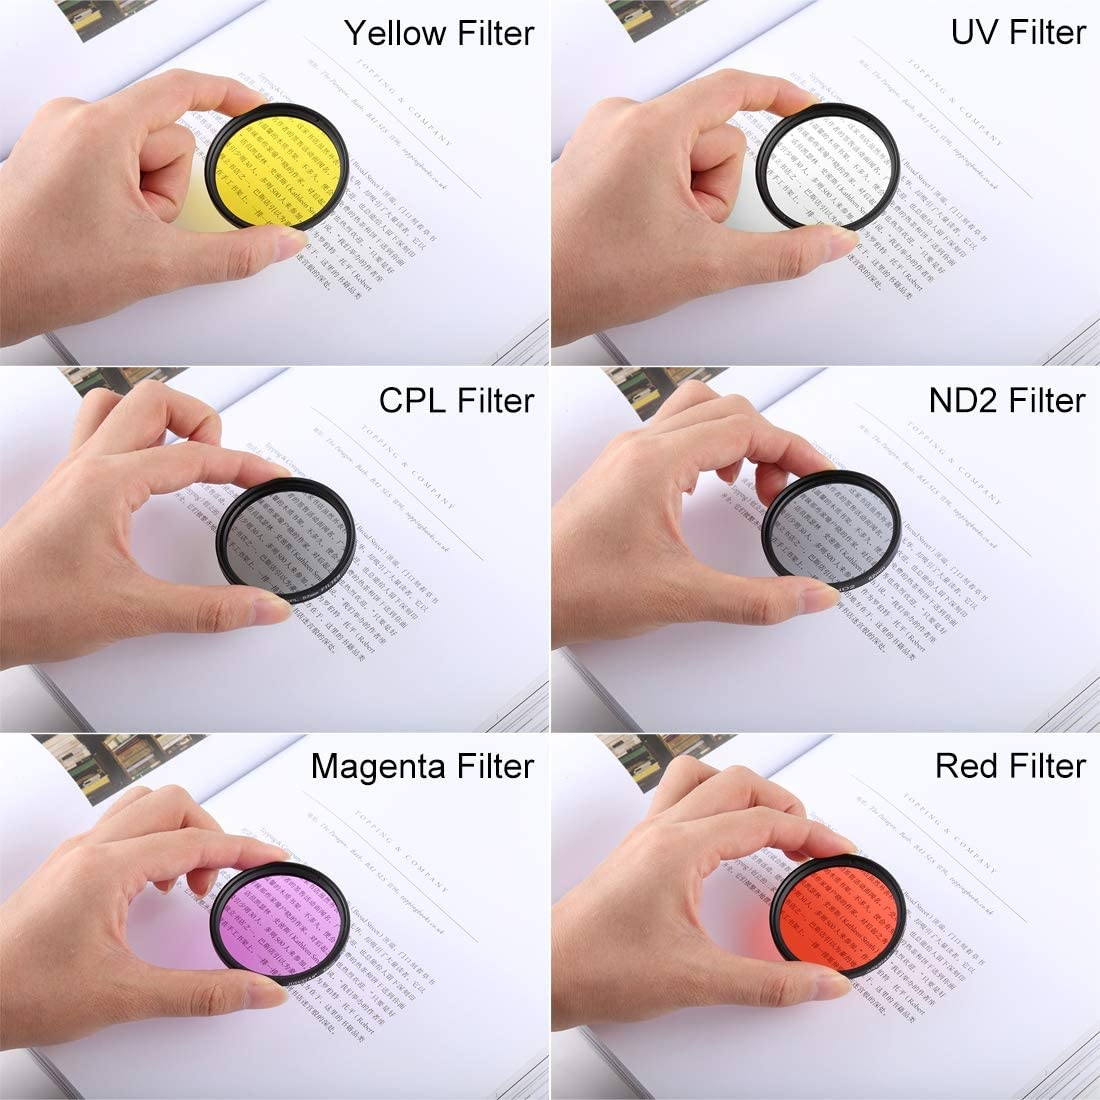 52mm Diving Filte 52mm UV Filter 52mm ND2 52mm Diving Filter Red 52mm CPL Filter FOR MOBILEACCESSORIES TL 7 in 1 for Xiaomi Xiaoyi Yi II 4K Sport Action Camera Proffesional 52mm Adapter Ring